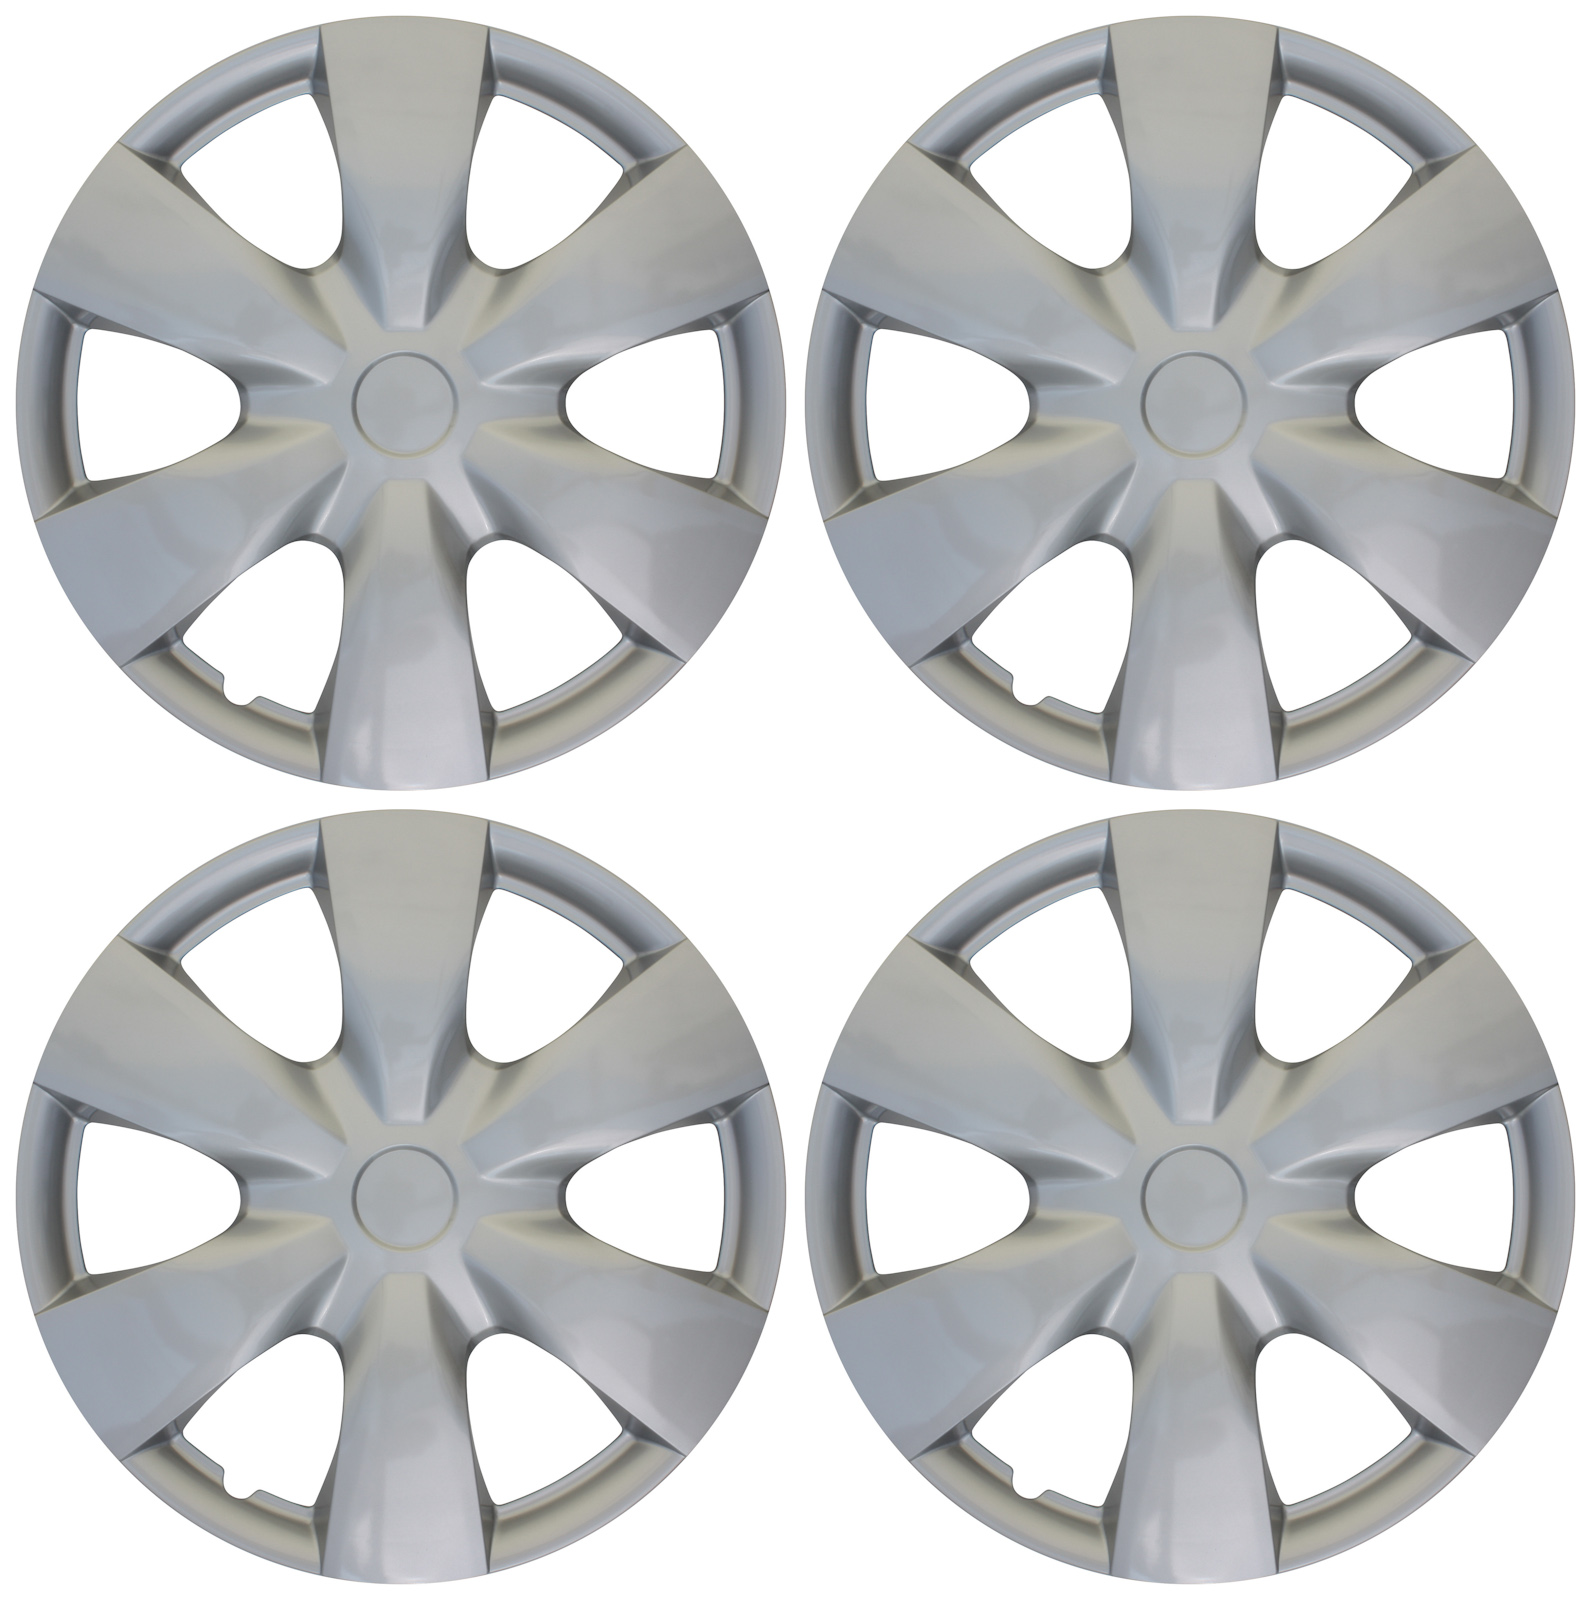 """Set of 4 Aftermarket Toyota Yaris Replica Hub Caps ABS Silver 15"""" Inch Universal Wheel Covers"""